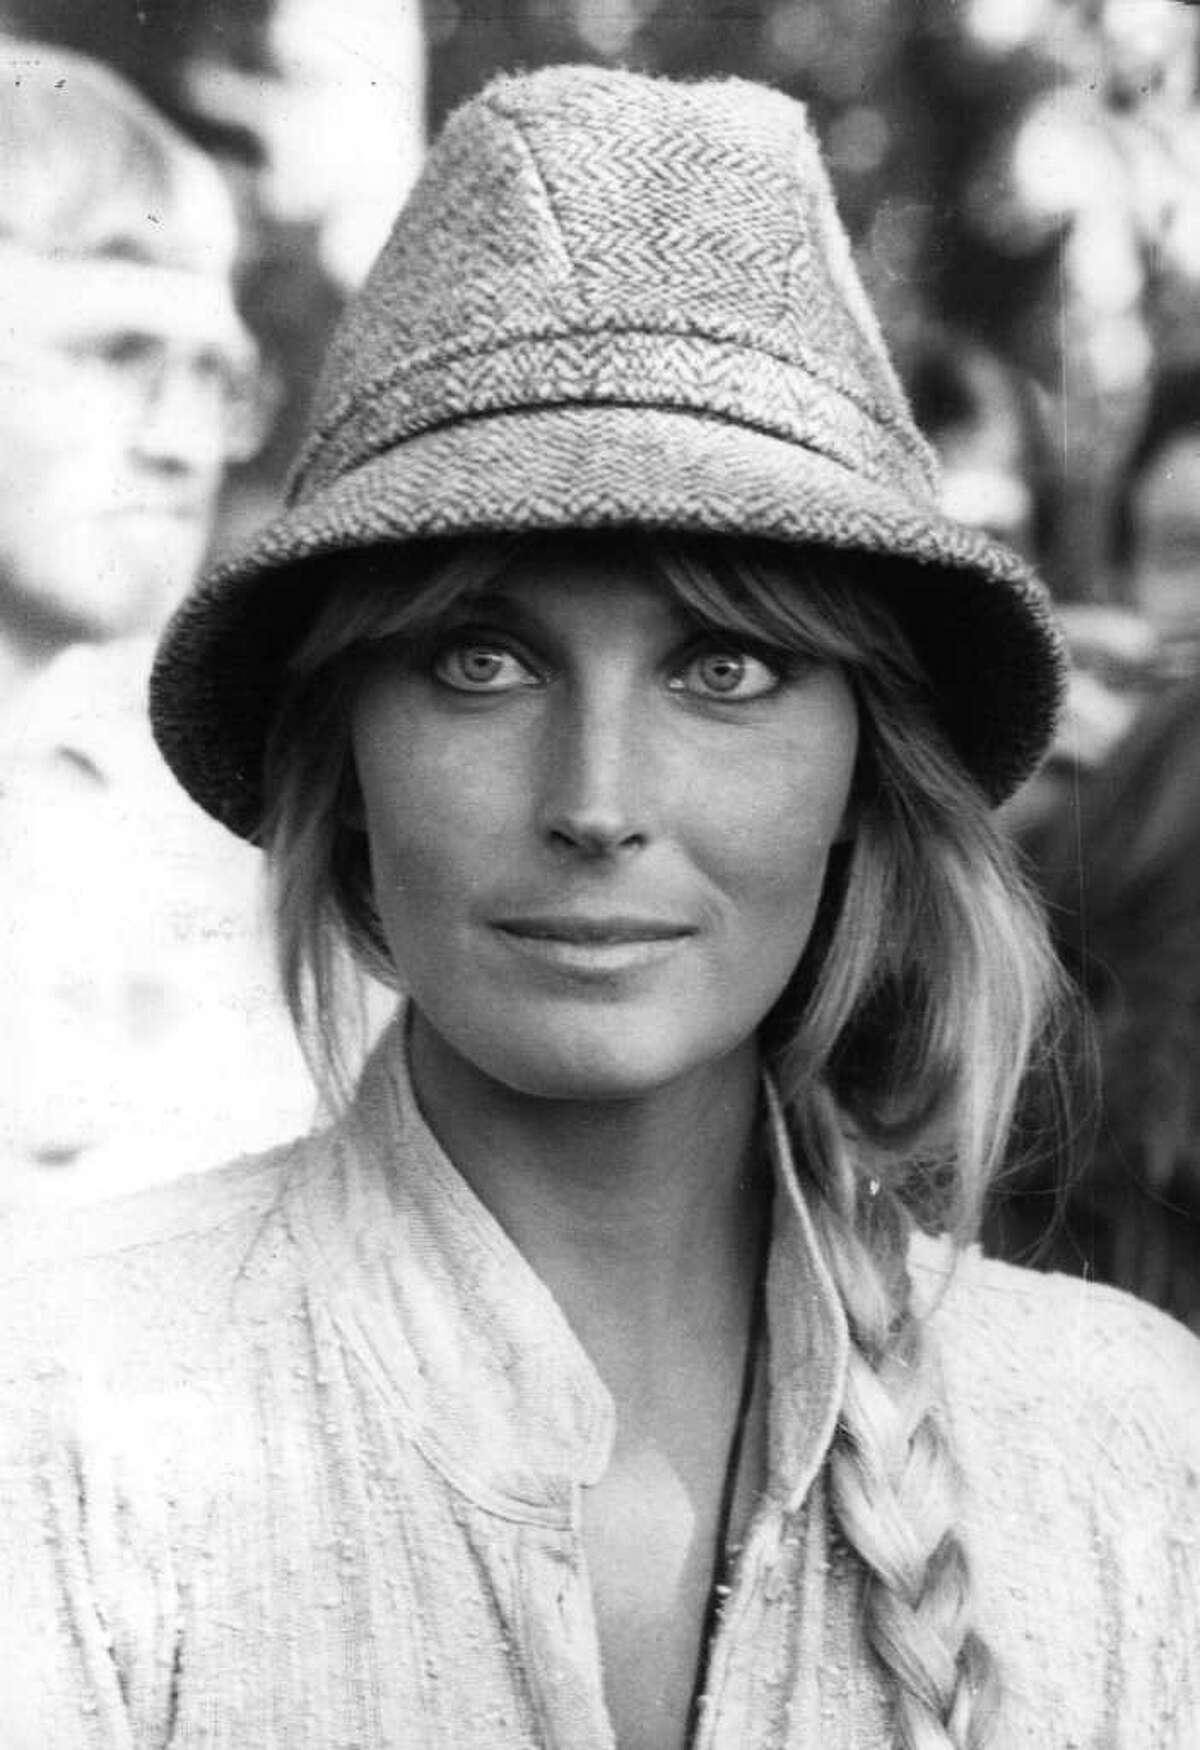 Return with us again to the land where some people age normally and others ... well, draw your own conclusions. First up is Bo Derek, photo taken on Sept. 24, 1981, age 24.